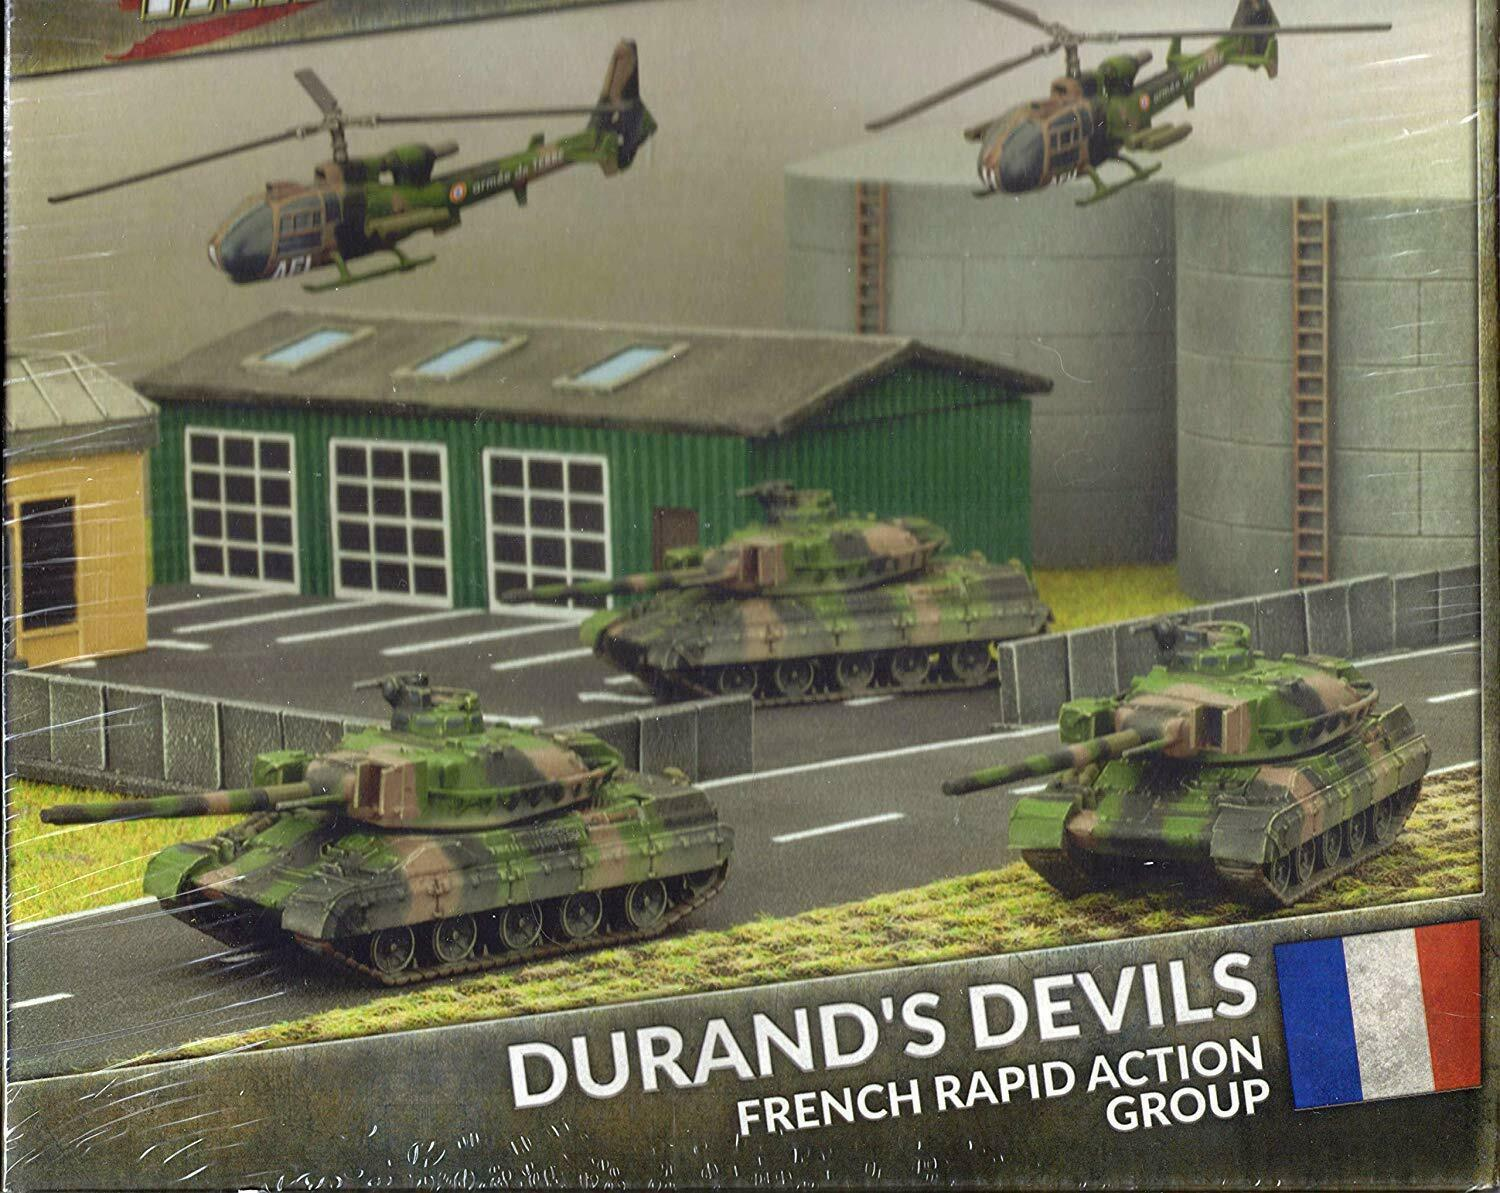 Team Yankee - Durand'S Devils (Plastic Army Deal) Army Deals - TFRAB1